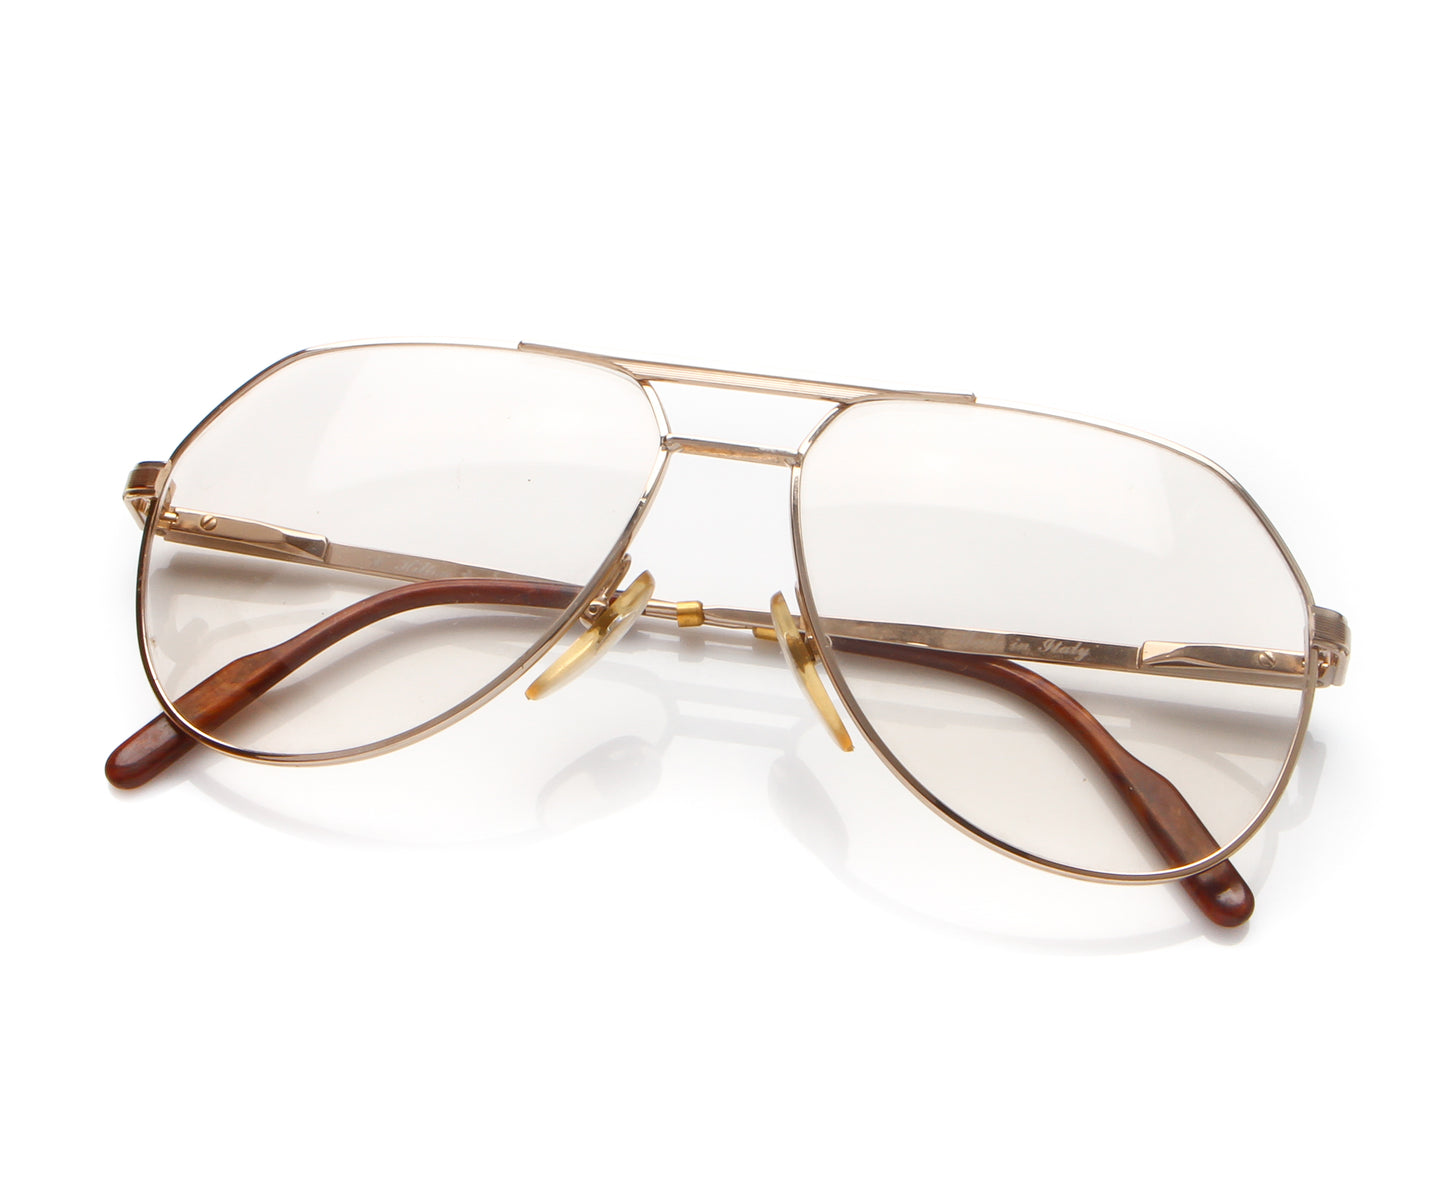 Vintage Hilton 802 Gold Thumb, Hilton , glasses frames, eyeglasses online, eyeglass frames, mens glasses, womens glasses, buy glasses online, designer eyeglasses, vintage sunglasses, retro sunglasses, vintage glasses, sunglass, eyeglass, glasses, lens, vintage frames company, vf